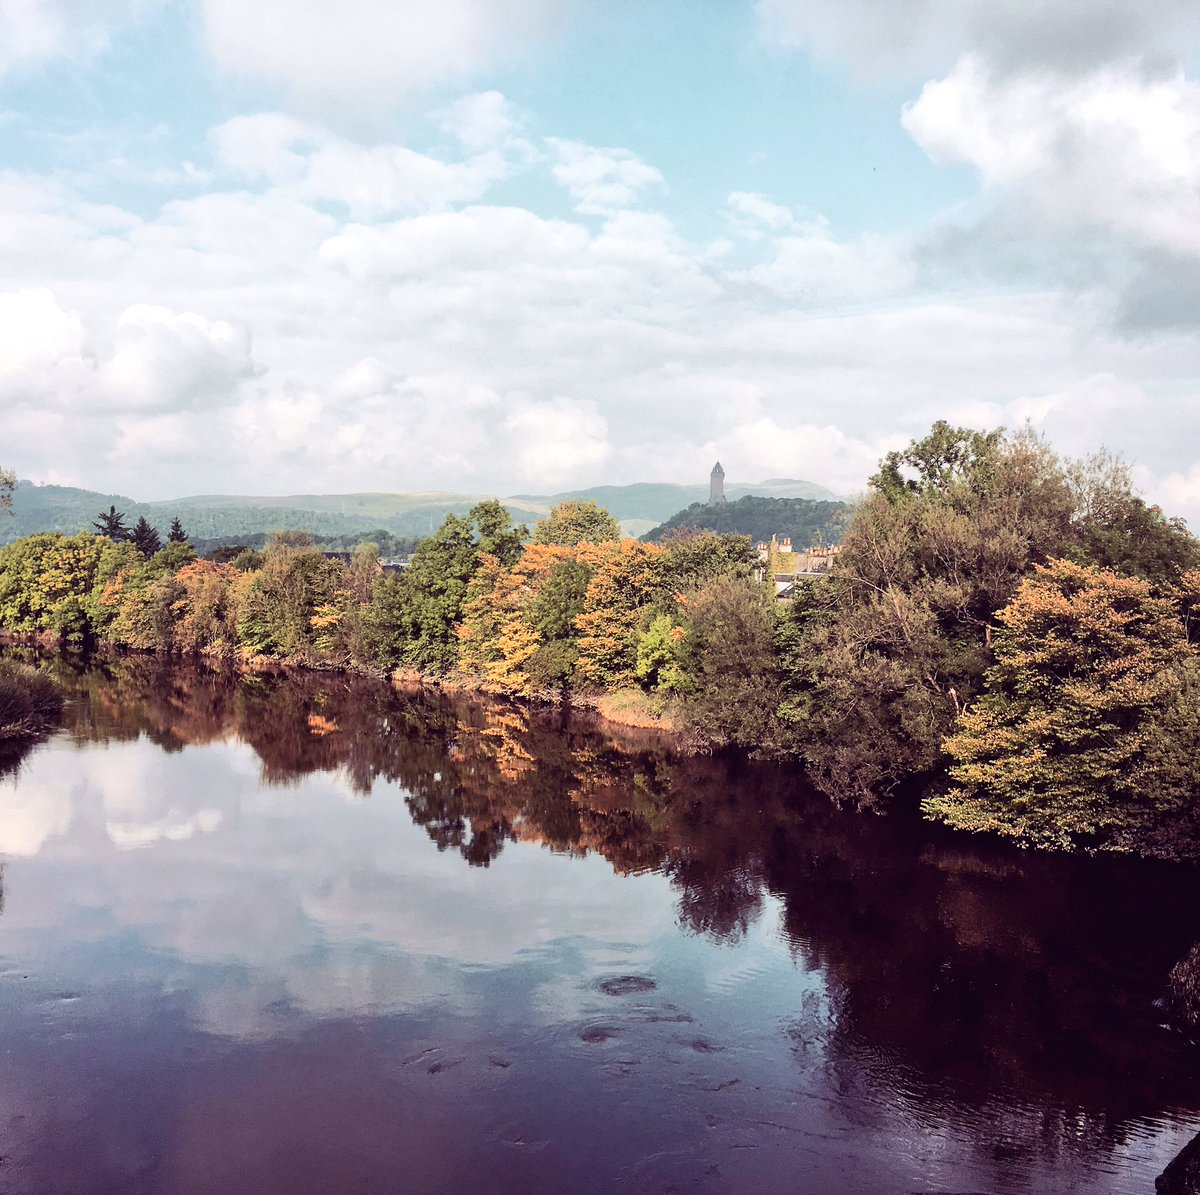 Early signs of #autumn on the #trees lining the #River #Forth from #historic #Stirling #Bridge and lovely #wallacemonument @VisitScotland<br>http://pic.twitter.com/ogPkbZGB8g